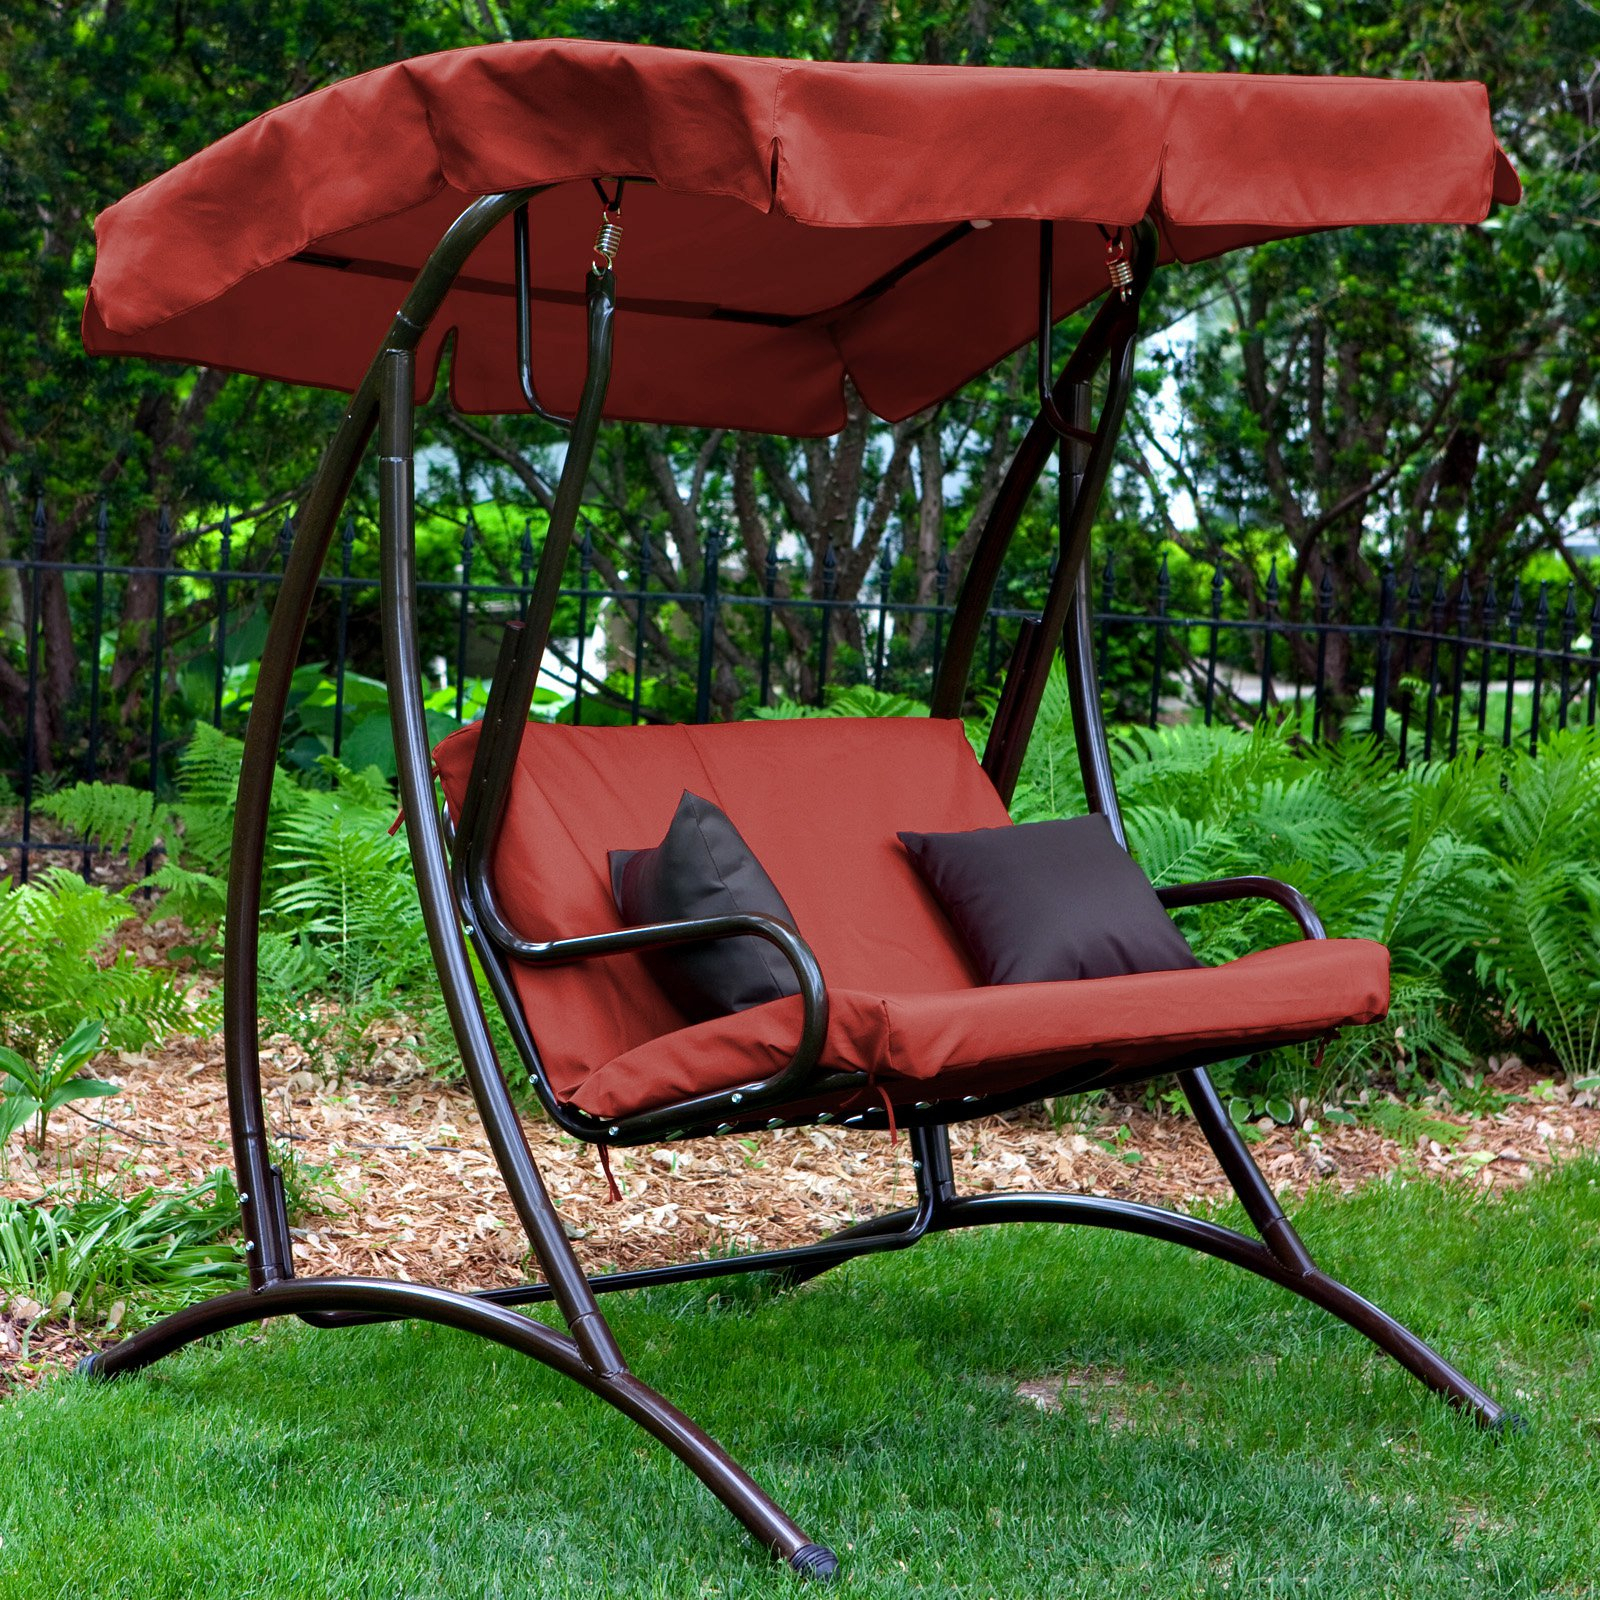 How To Replace A Canopy On An Outdoor Swing (Image 17 of 25)